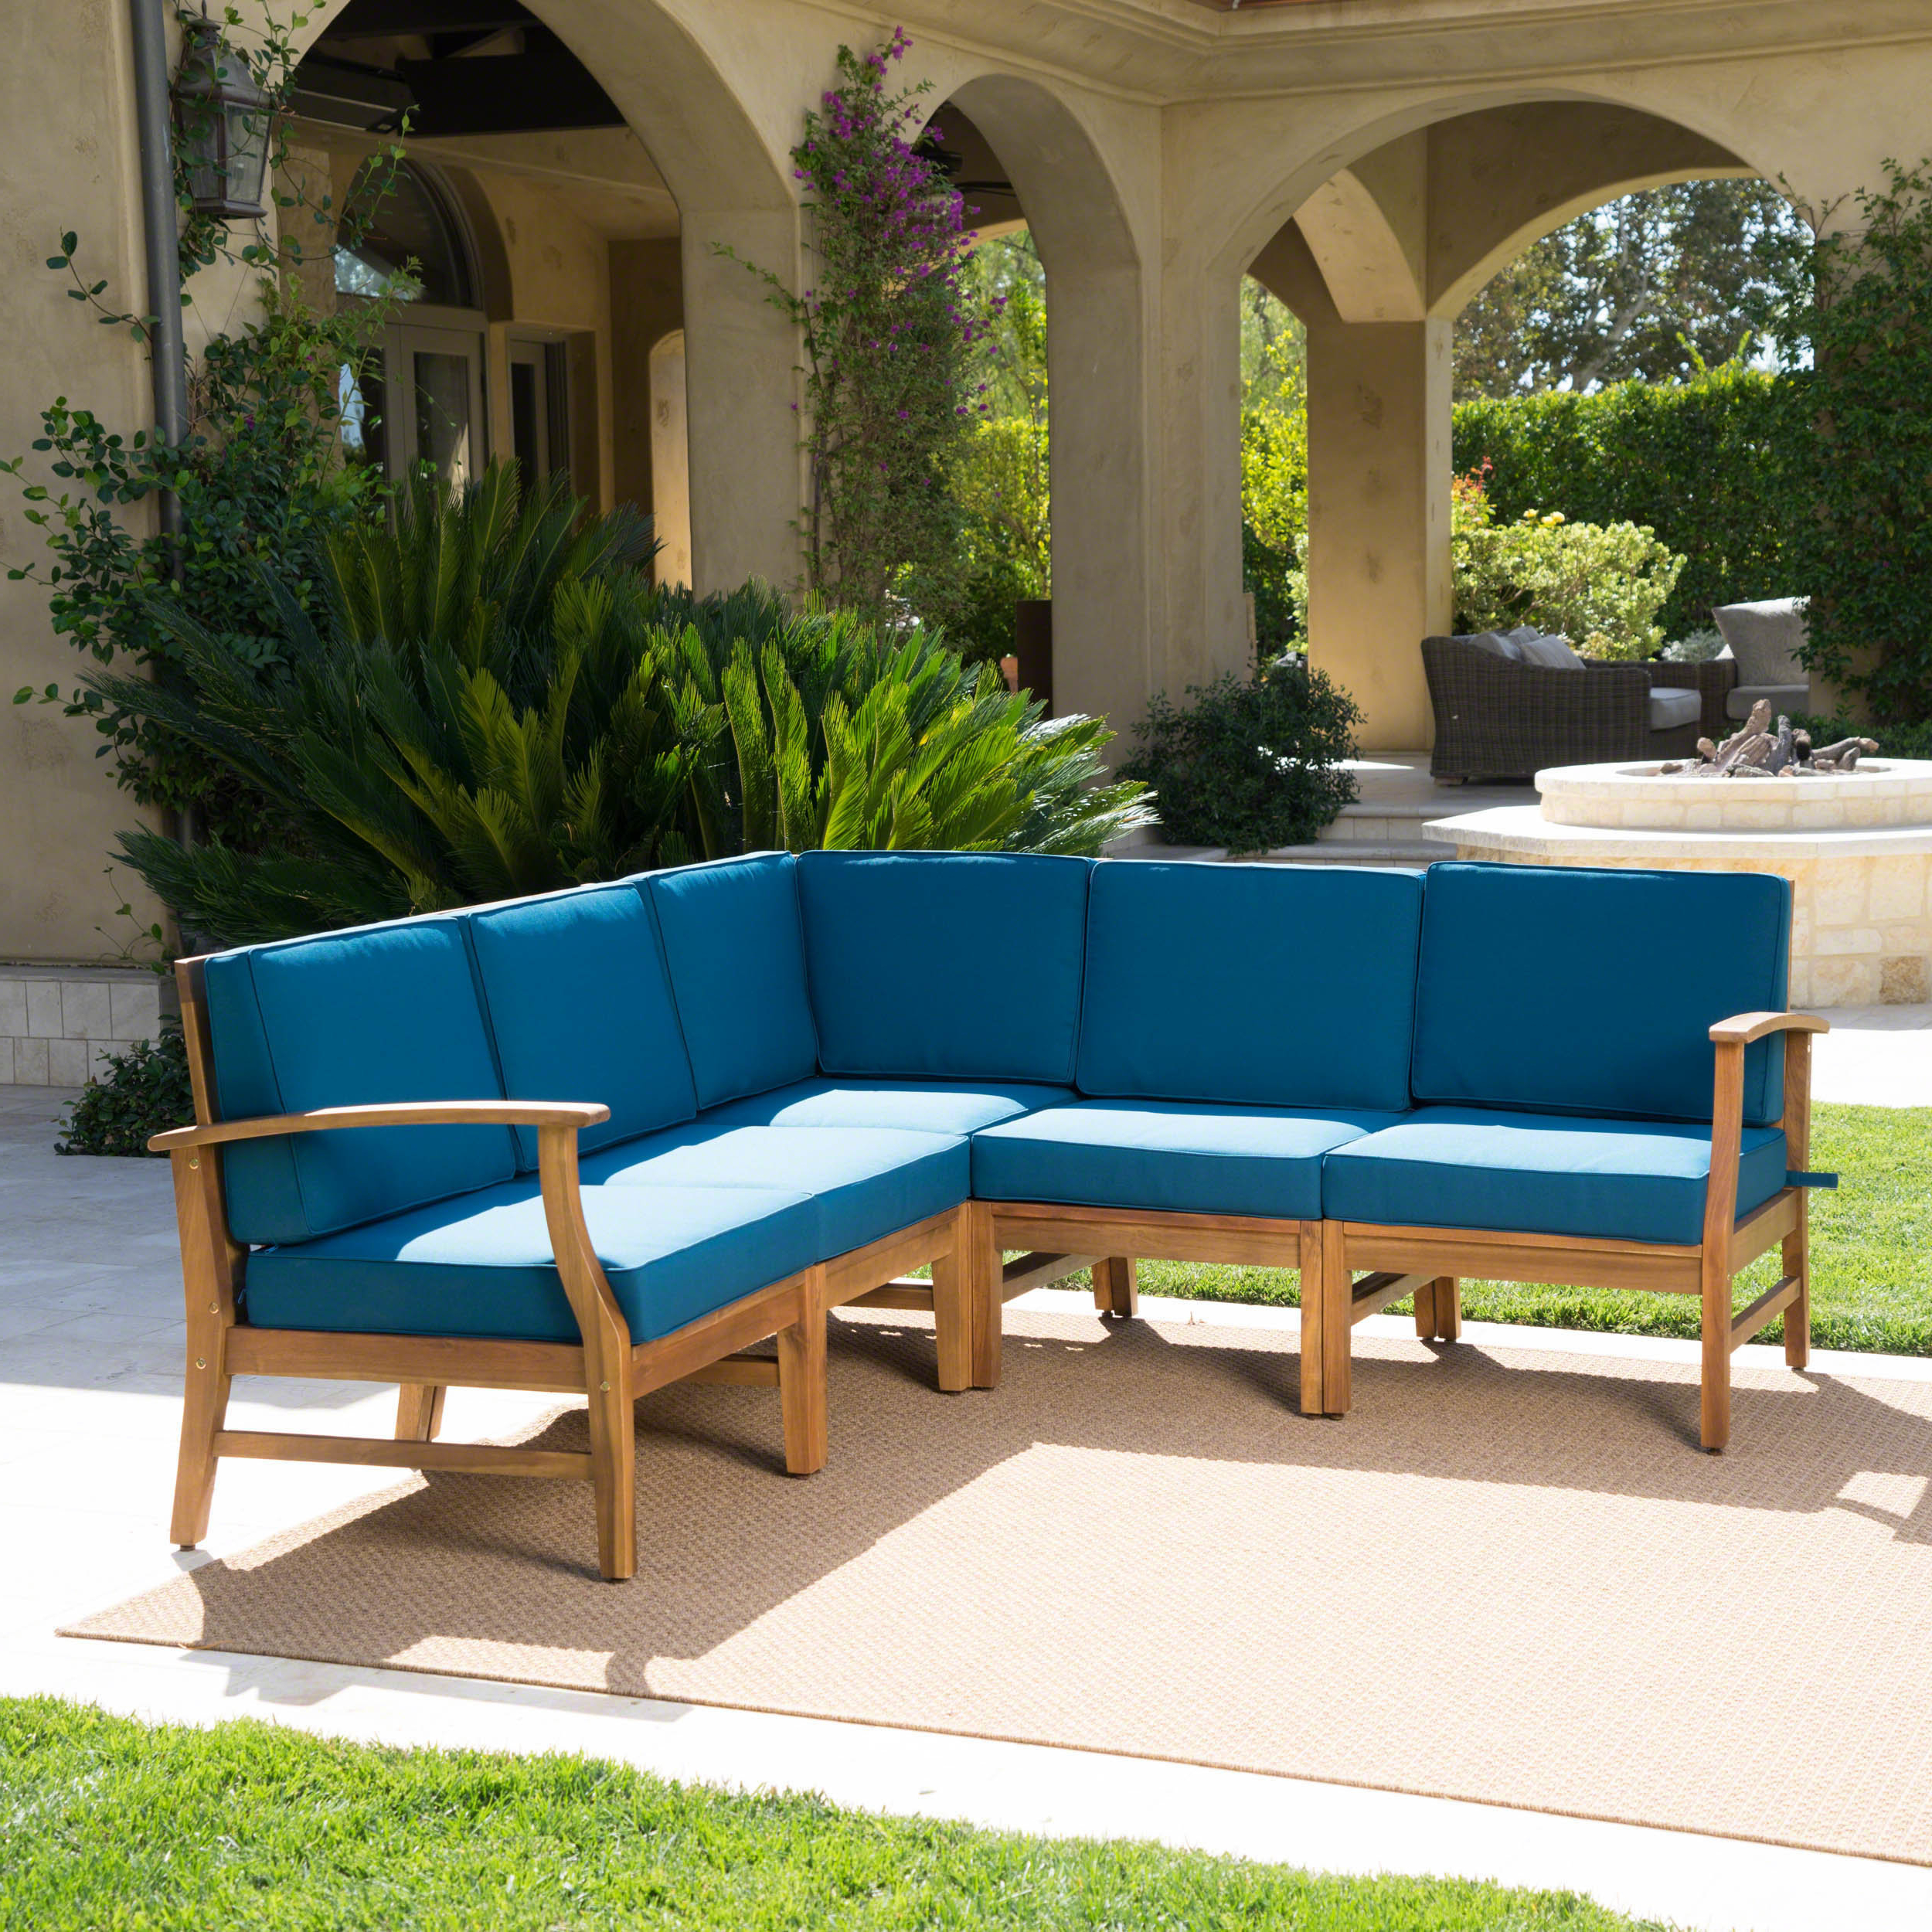 Antonia Teak Patio Sectionals With Cushions Within Preferred Antonia Teak Patio Sectional With Cushions (Gallery 4 of 25)